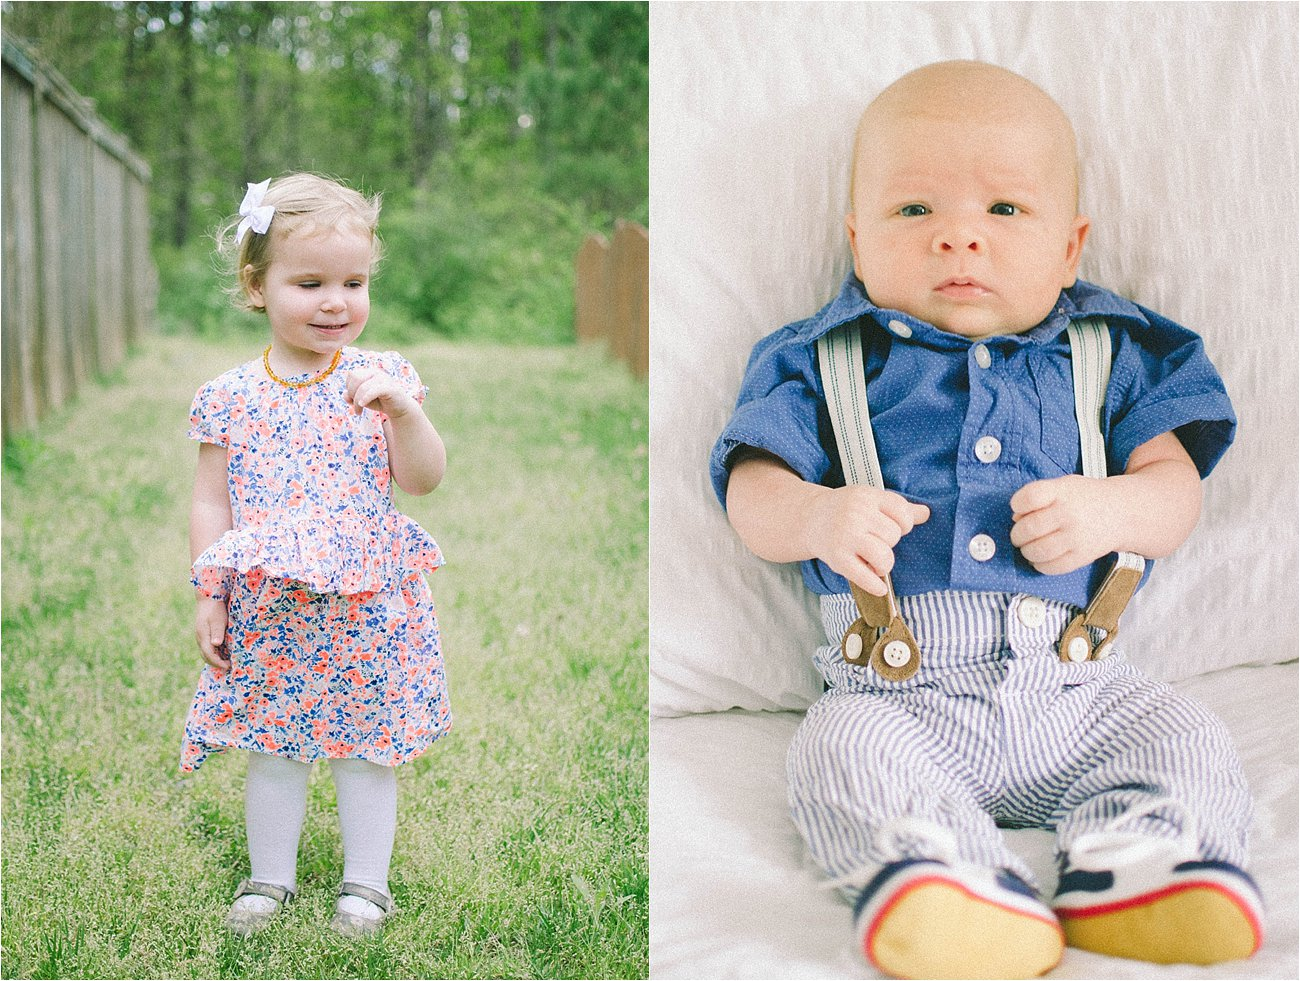 Osh Kosh Kids #BreakForSpring Kids and Baby Style (2)